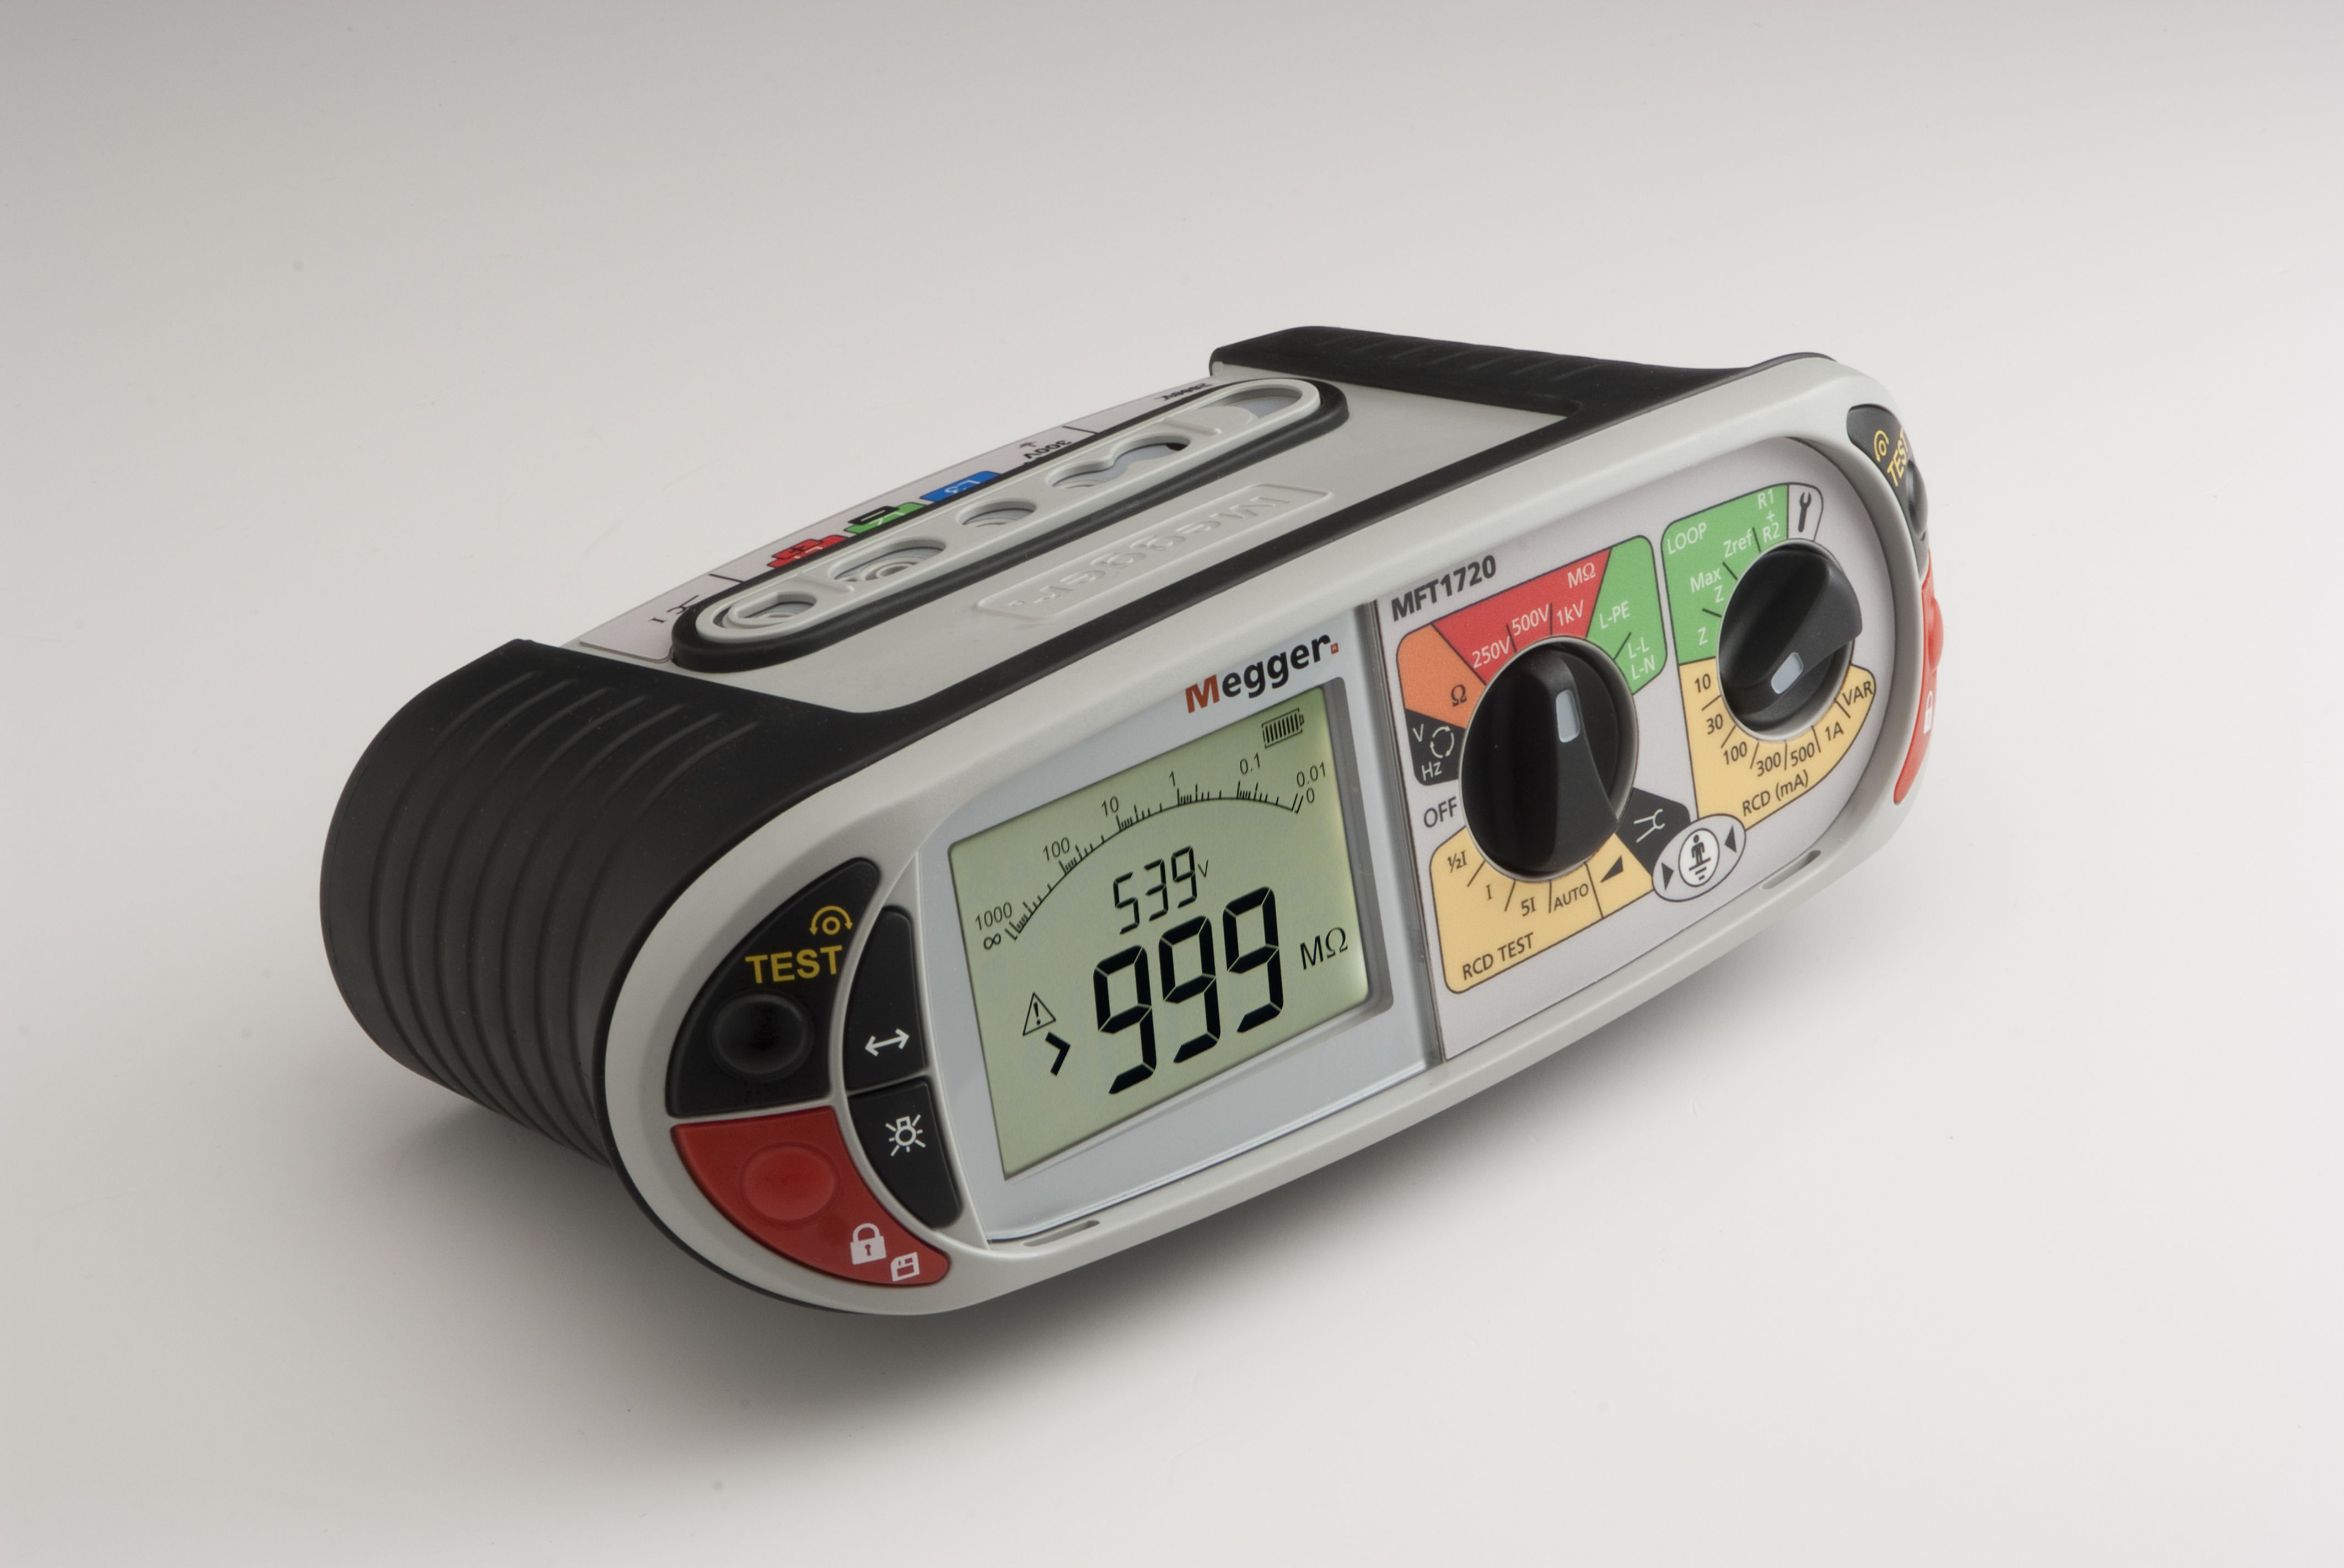 Megger Mft1720 Multifunction Tester For Checking And Certifying Uk Wiring Regulations Electrical Installations To The Edition